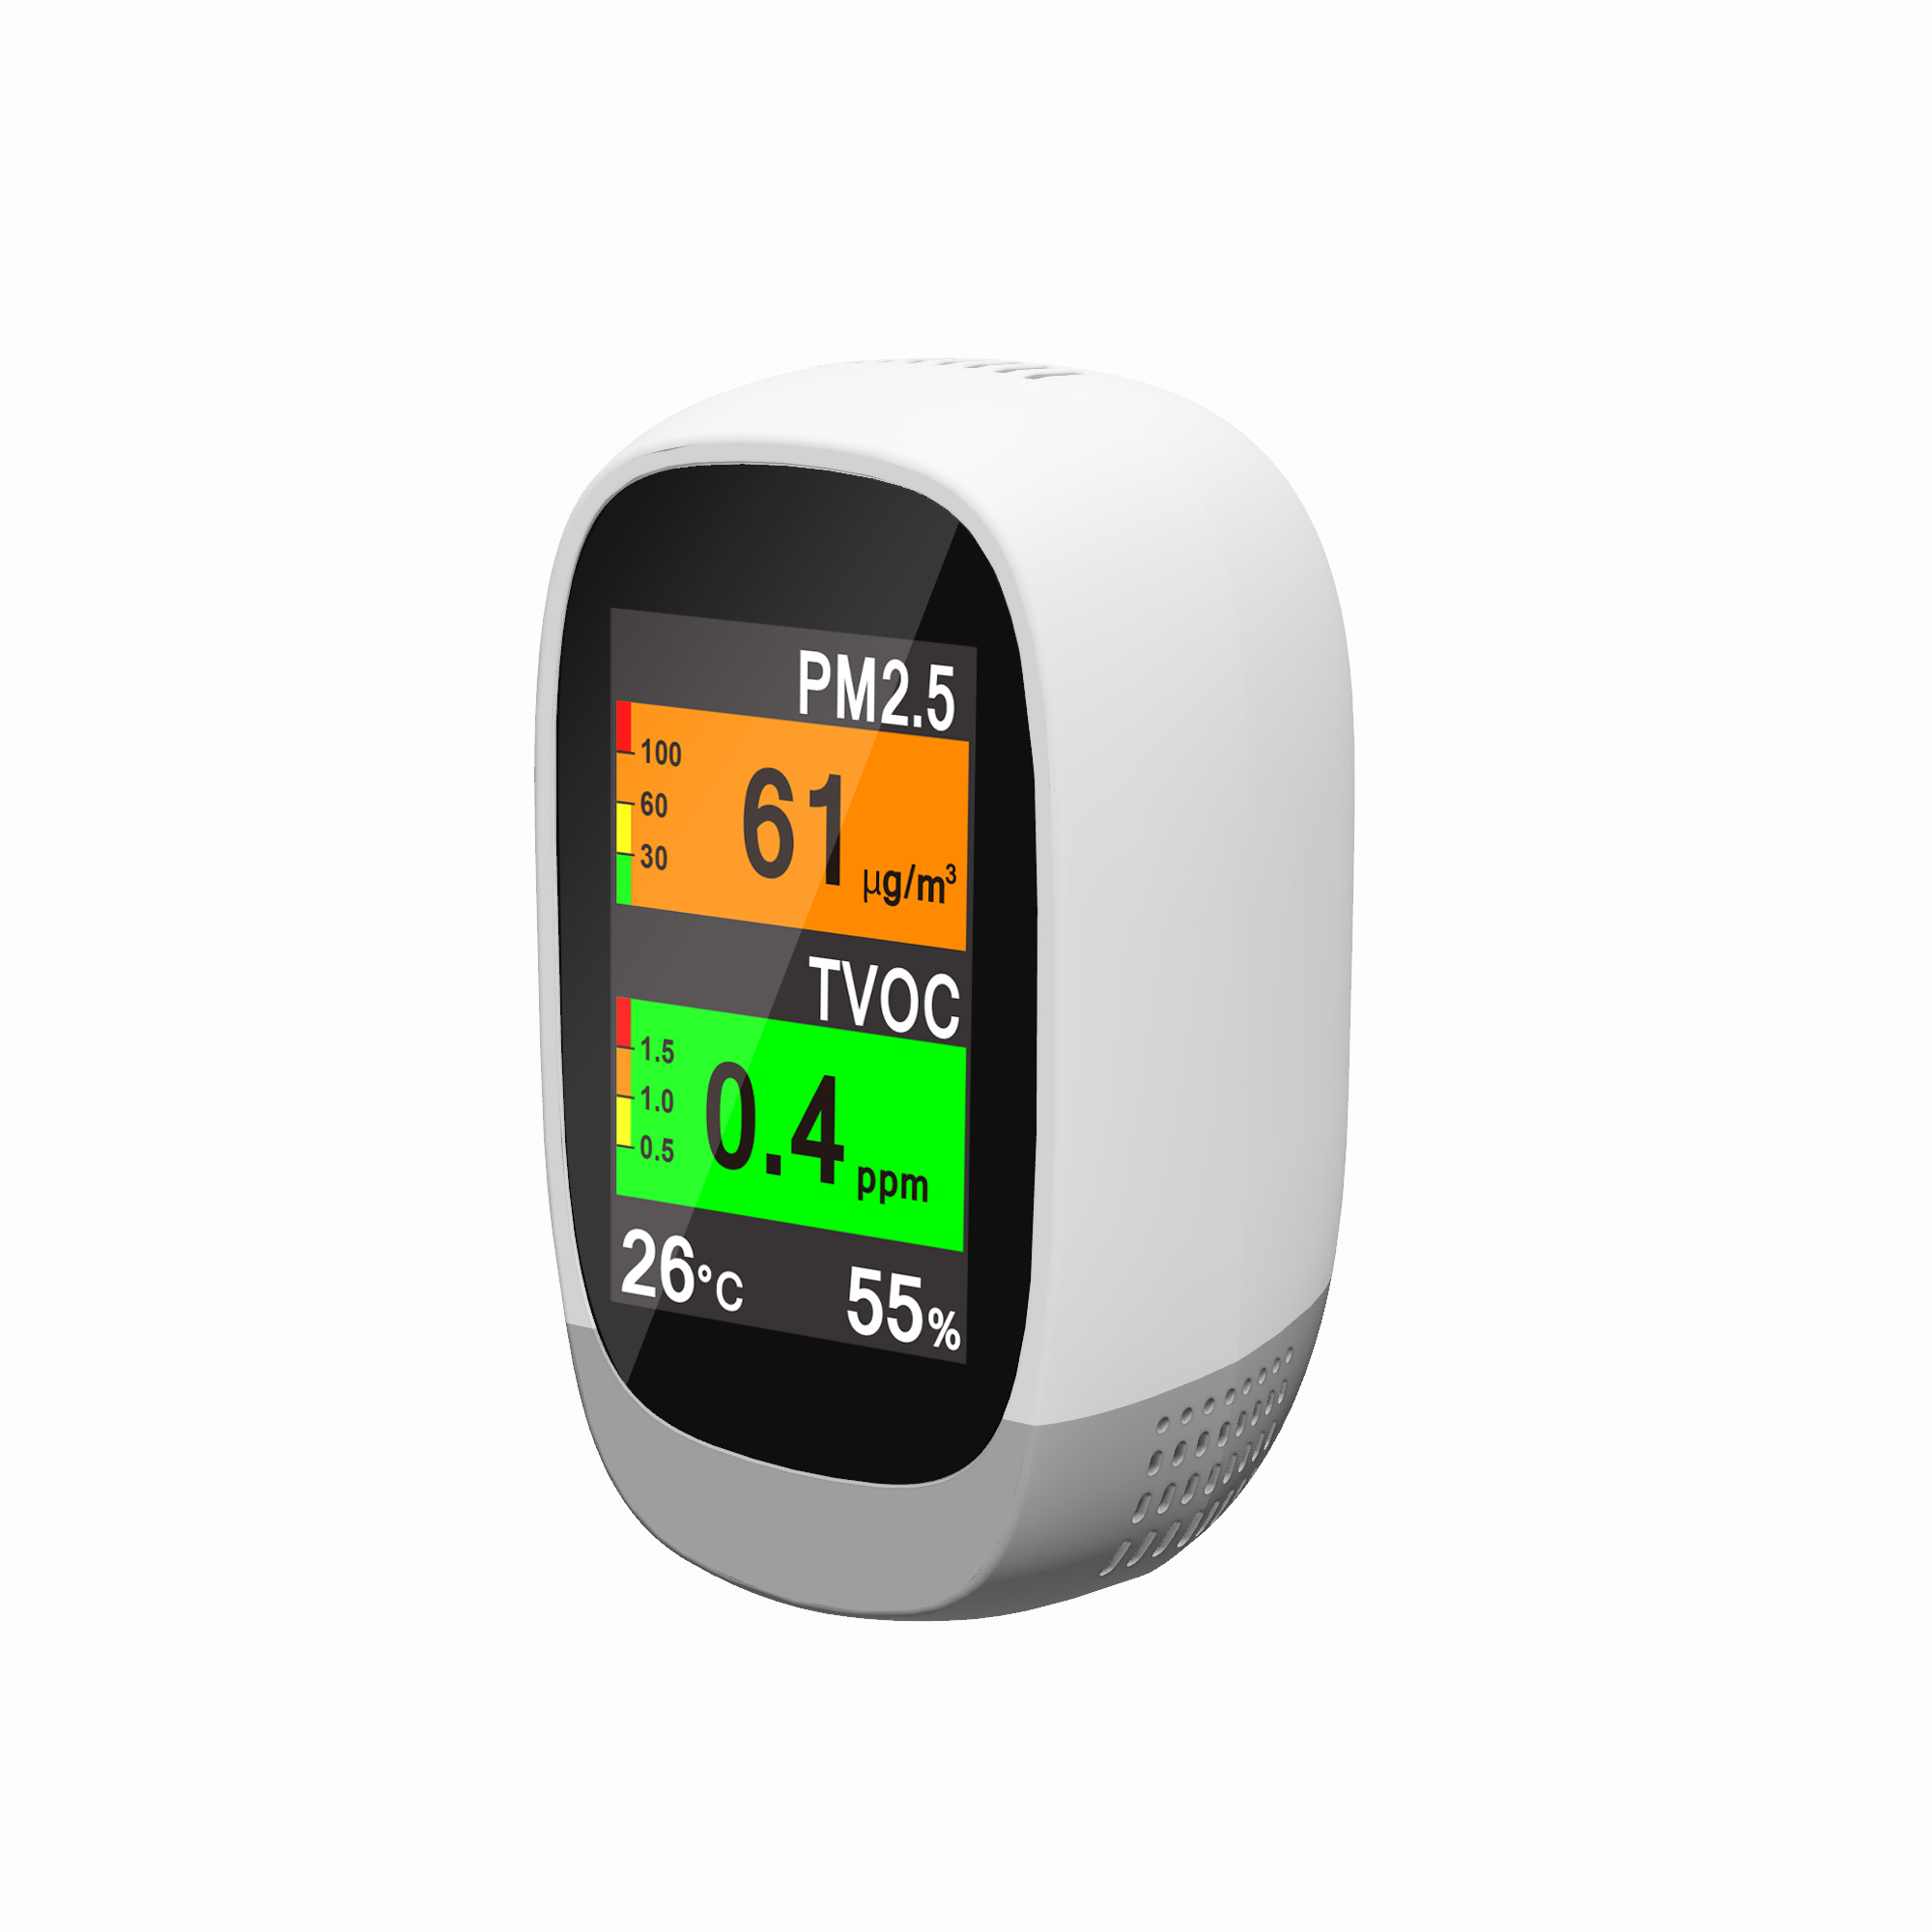 Home Desktop Temperature Monitor Device Measuring Air Pollution